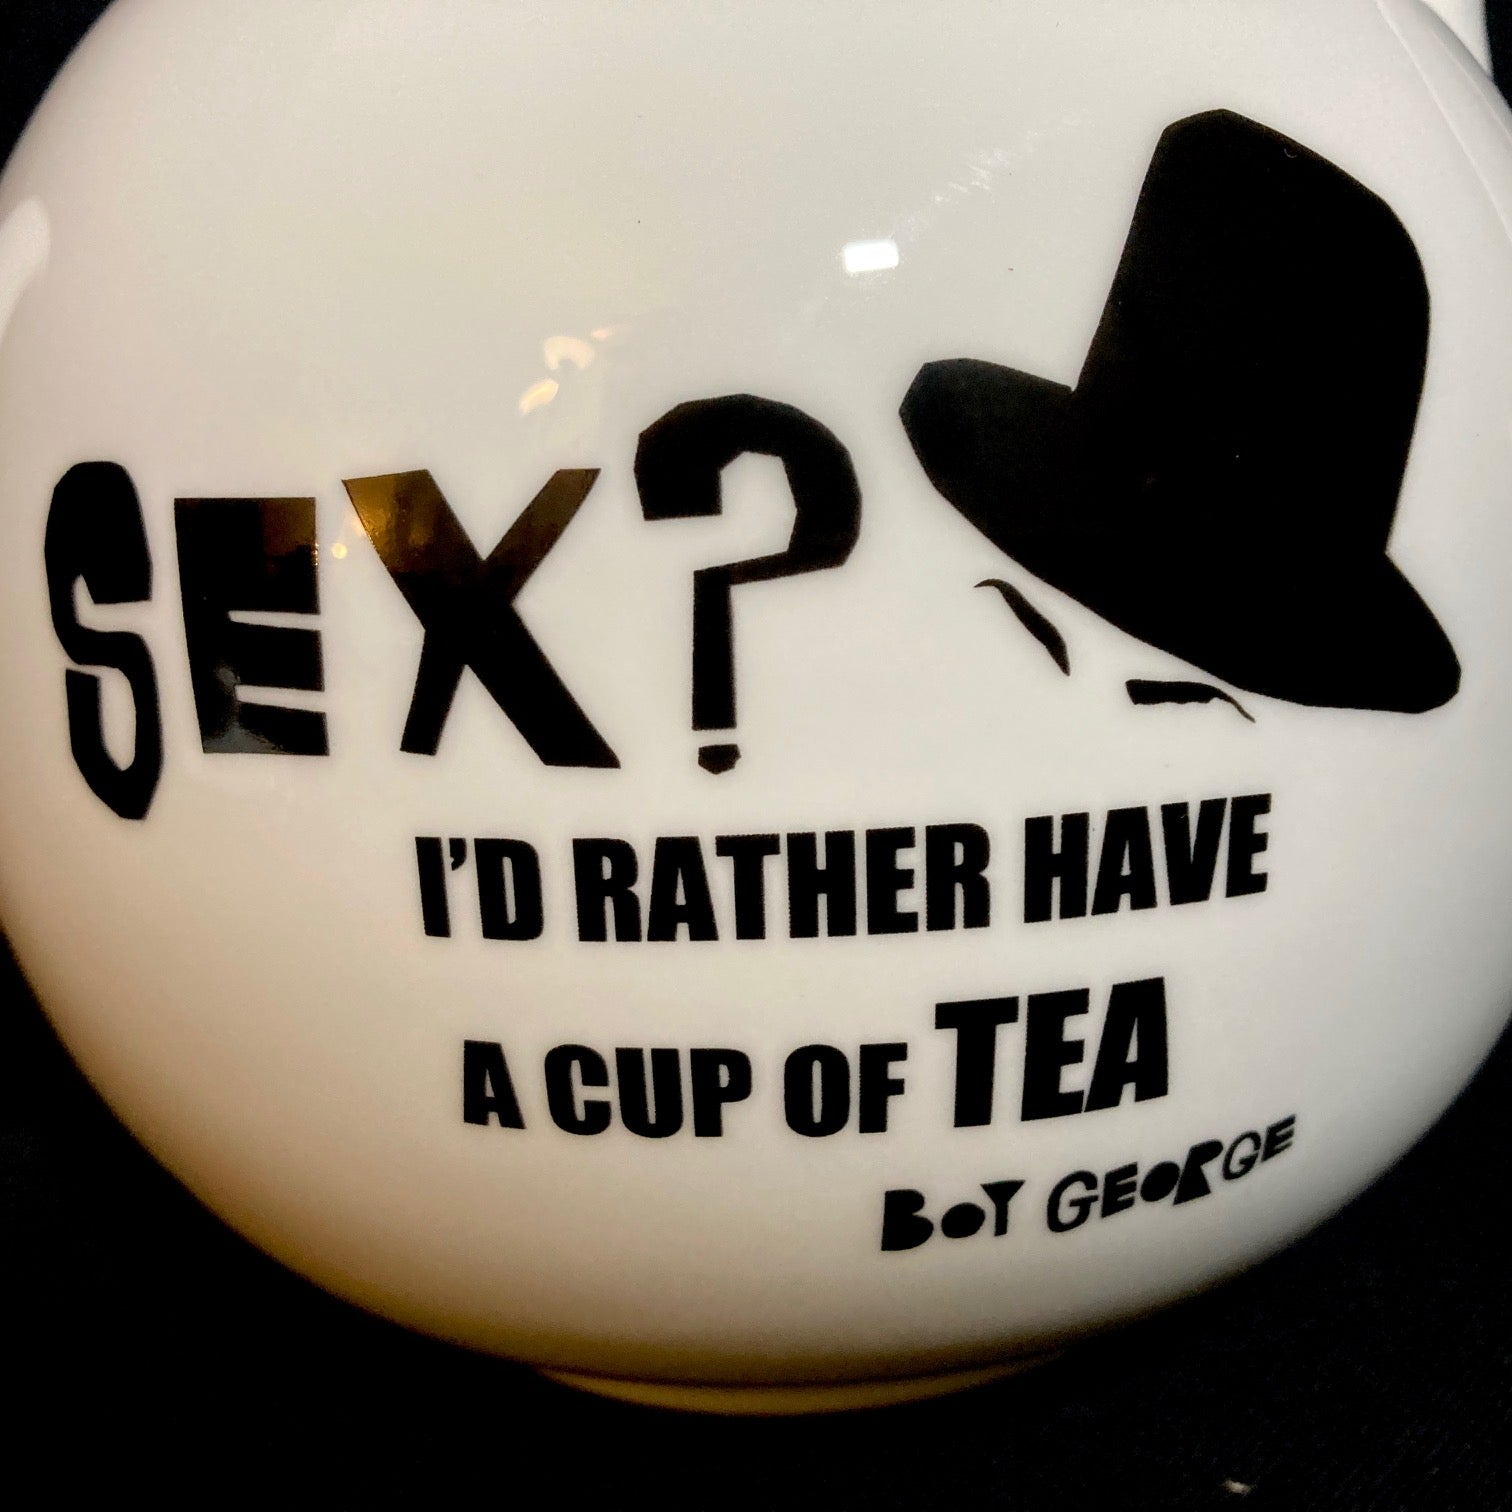 Bone China Teapot featuring iconic Boy George quote 'Sex? I'd Rather Have A Cup Of Tea'